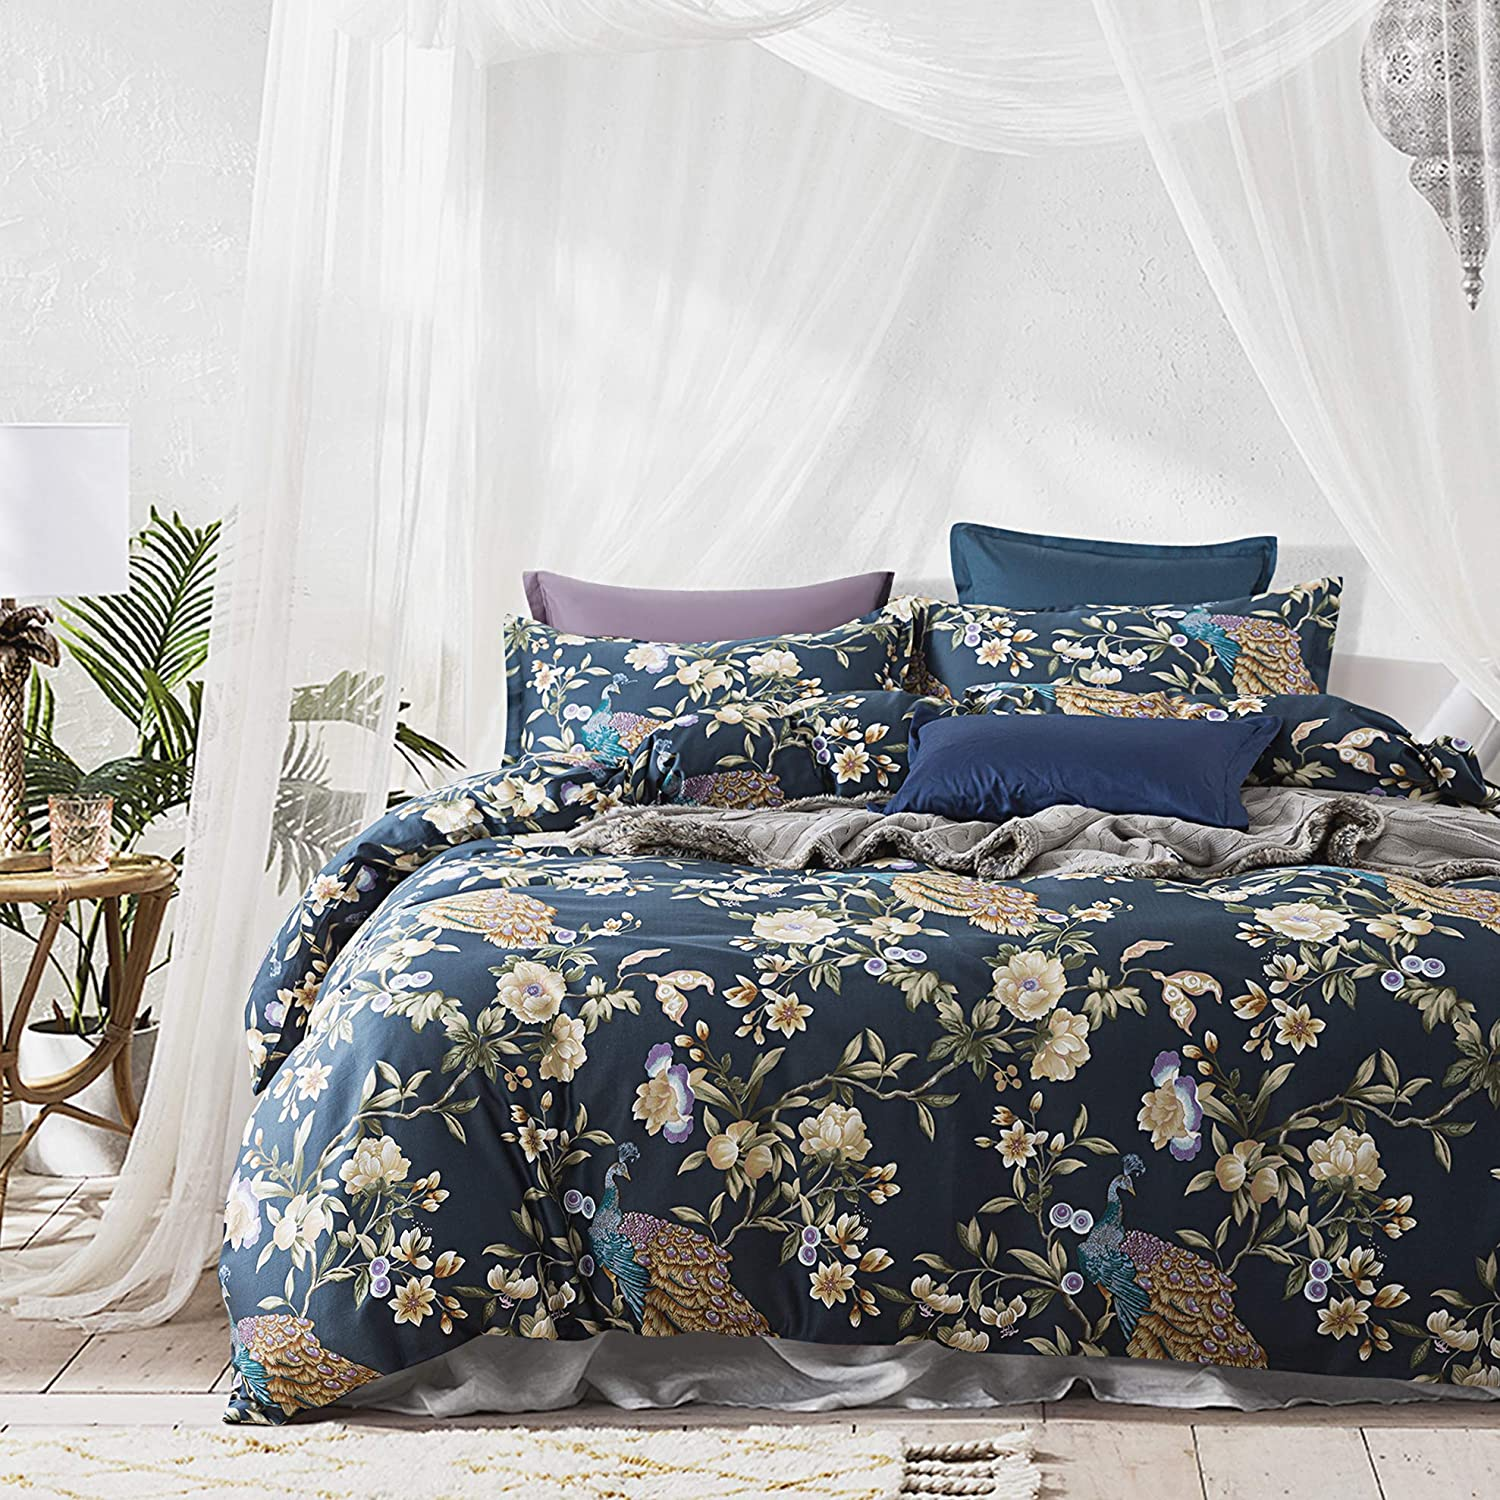 Eikei Oriental Garden Majestic Peacock Bird Floral Duvet Cover Chinoiserie Chic Asian Style Blooming Trees Vines and Branches Long Staple Cotton 3pc Bedding Set (Orion Blue, King)